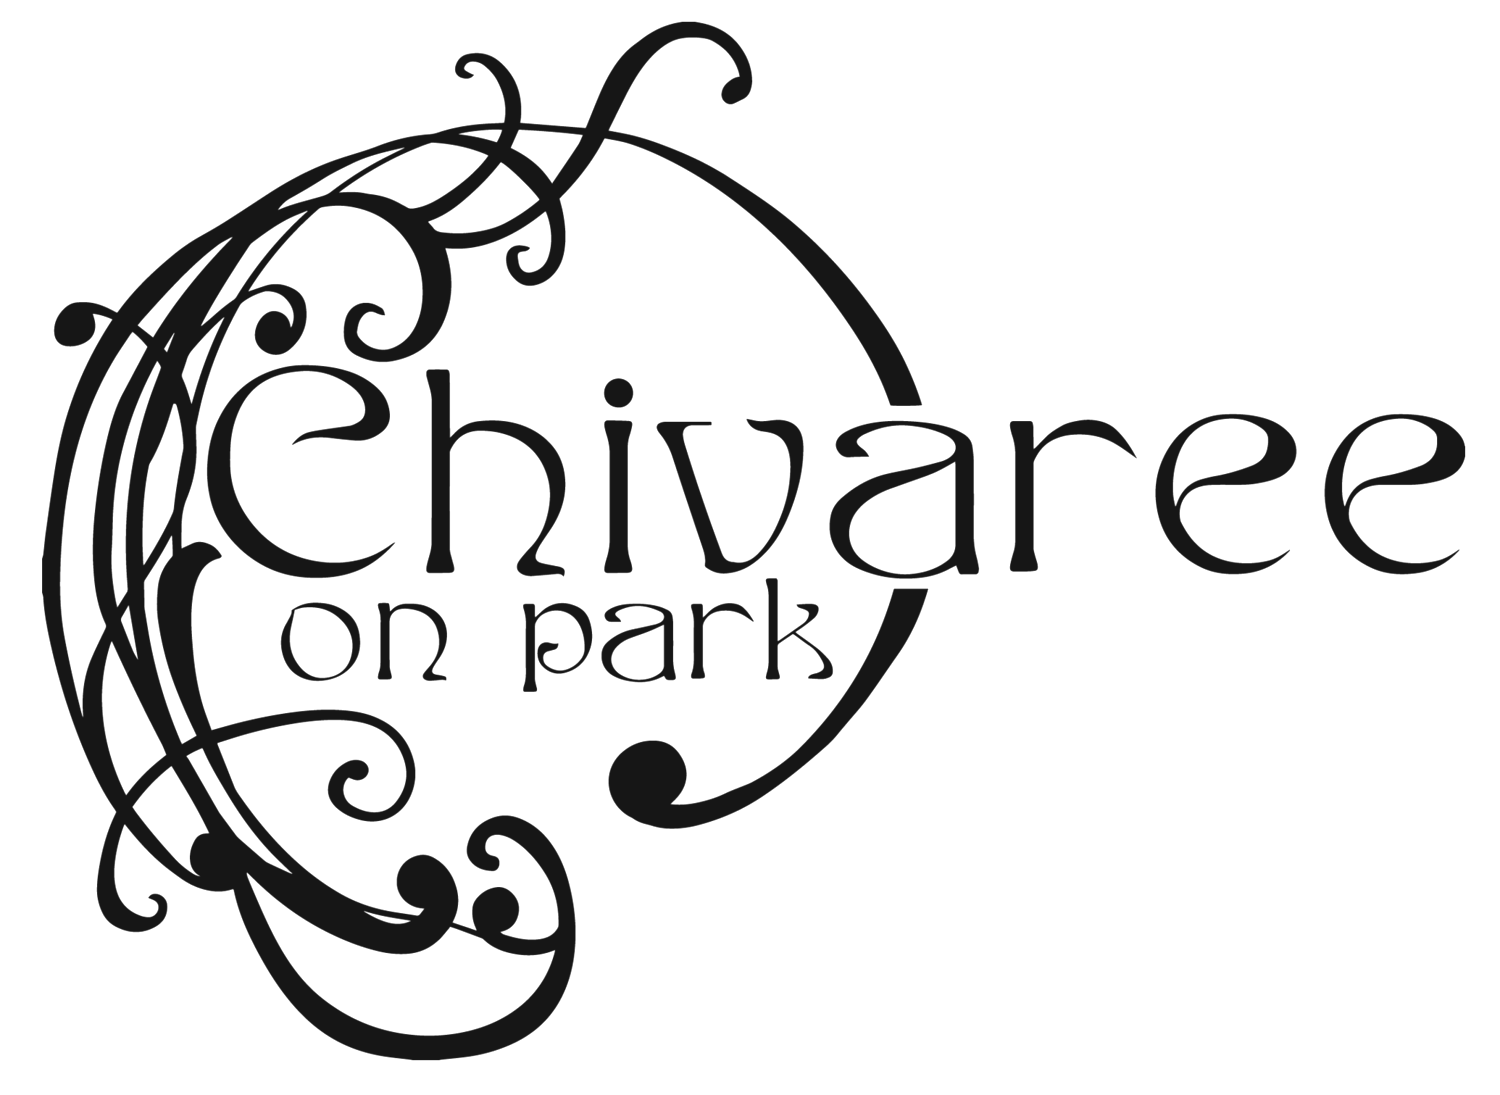 Chivaree on Park